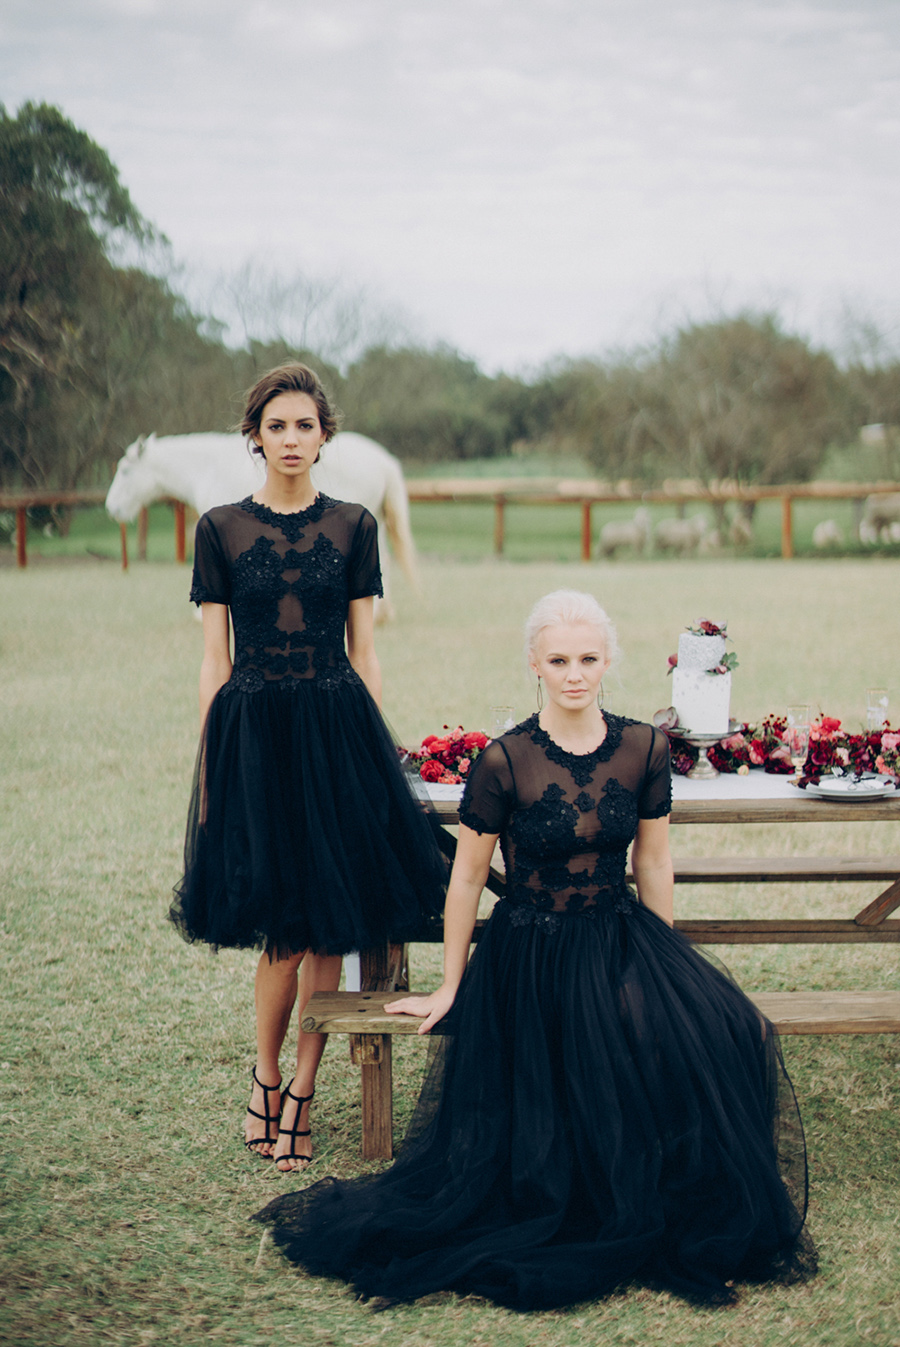 two brides wearing matching chic and sparkling black wedding dresses of different lengths